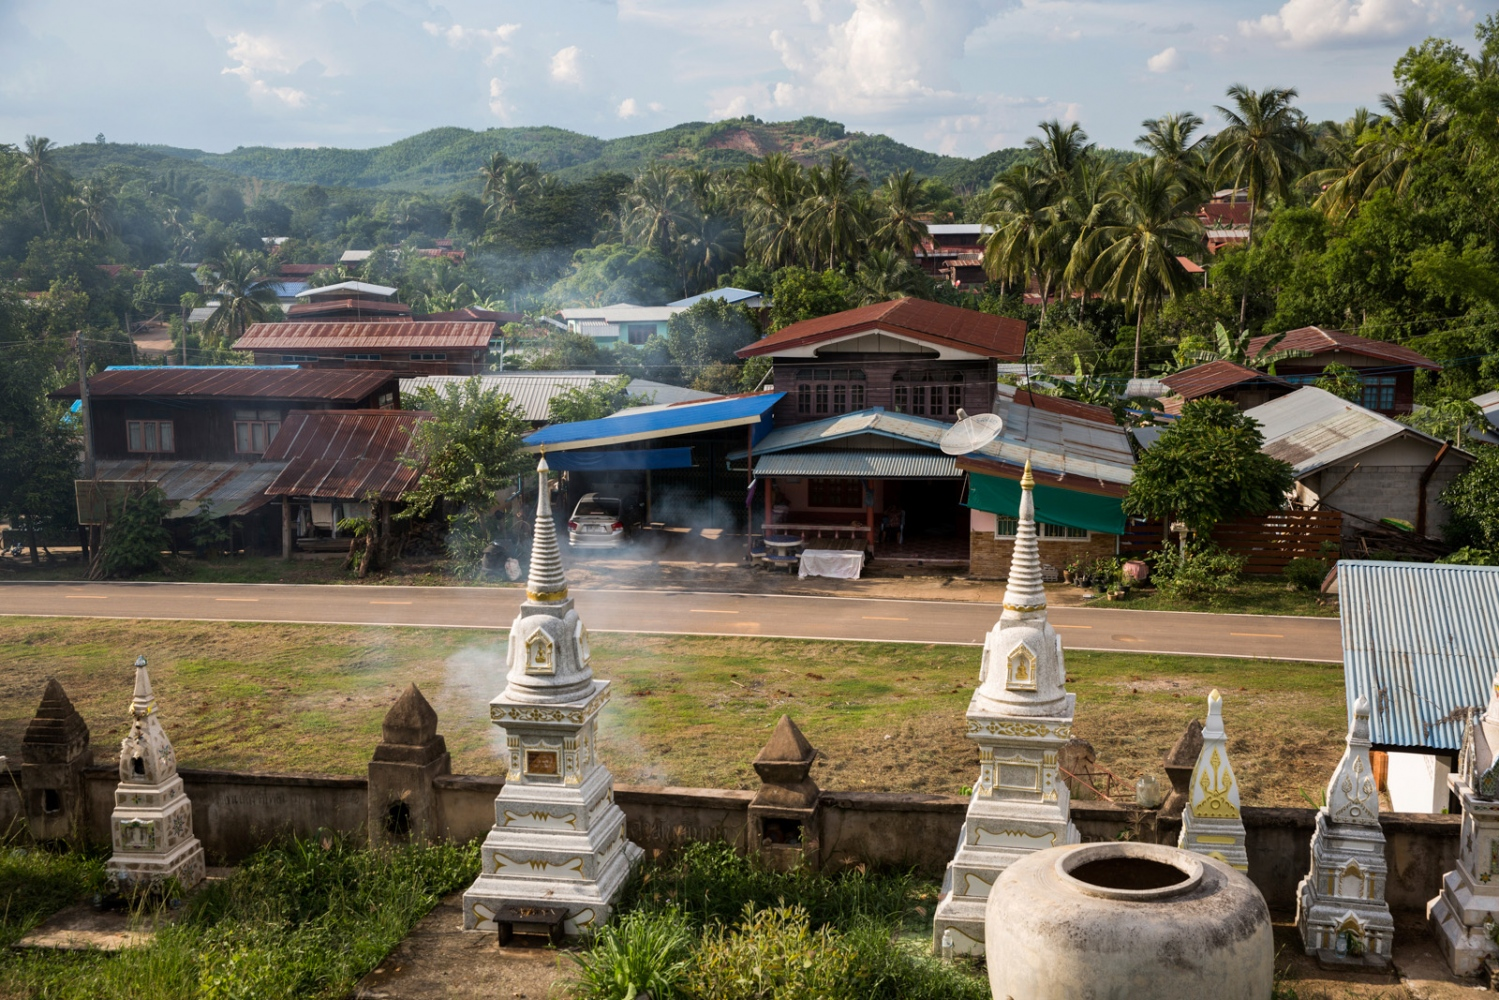 The village of Na Nong Bong viewed from the local Buddhist temple. One of the mines can be seen on the top of the hill in the distance.